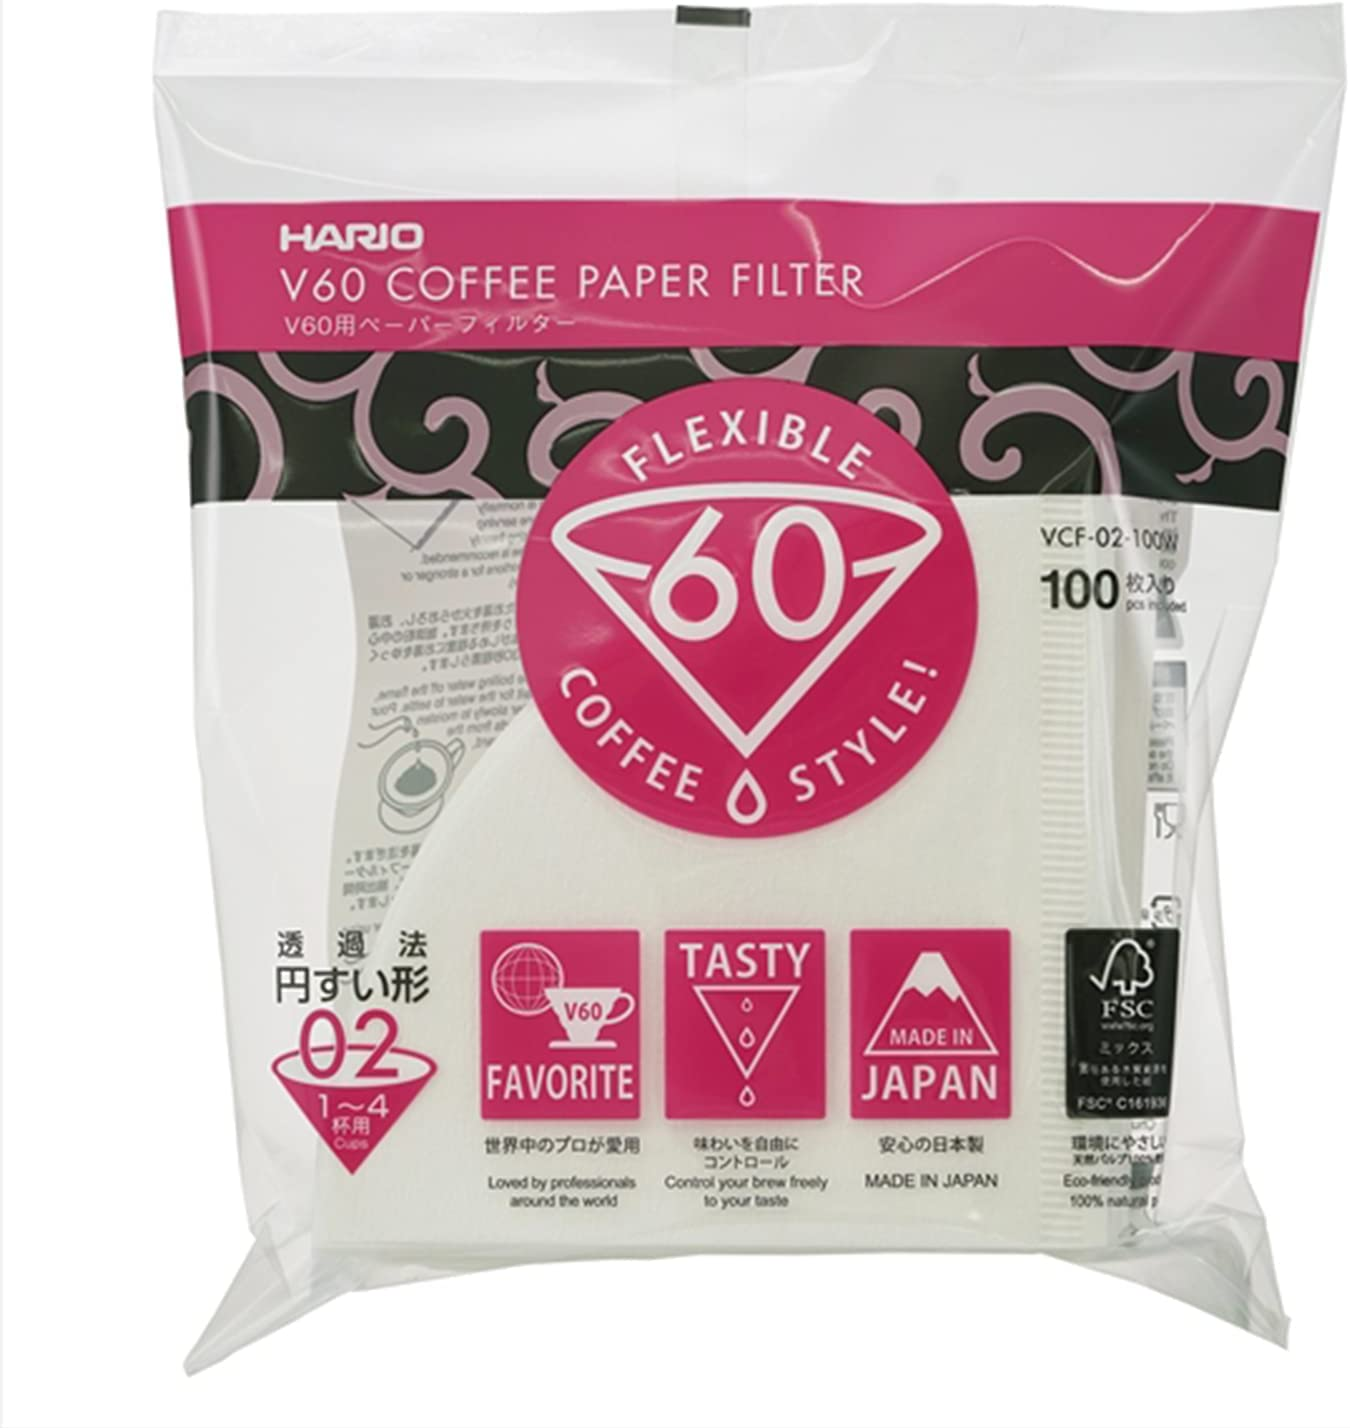 VCF-02-100W 100 pieces 1-4 cups of Hario V60 for paper filter 01W (japan import)